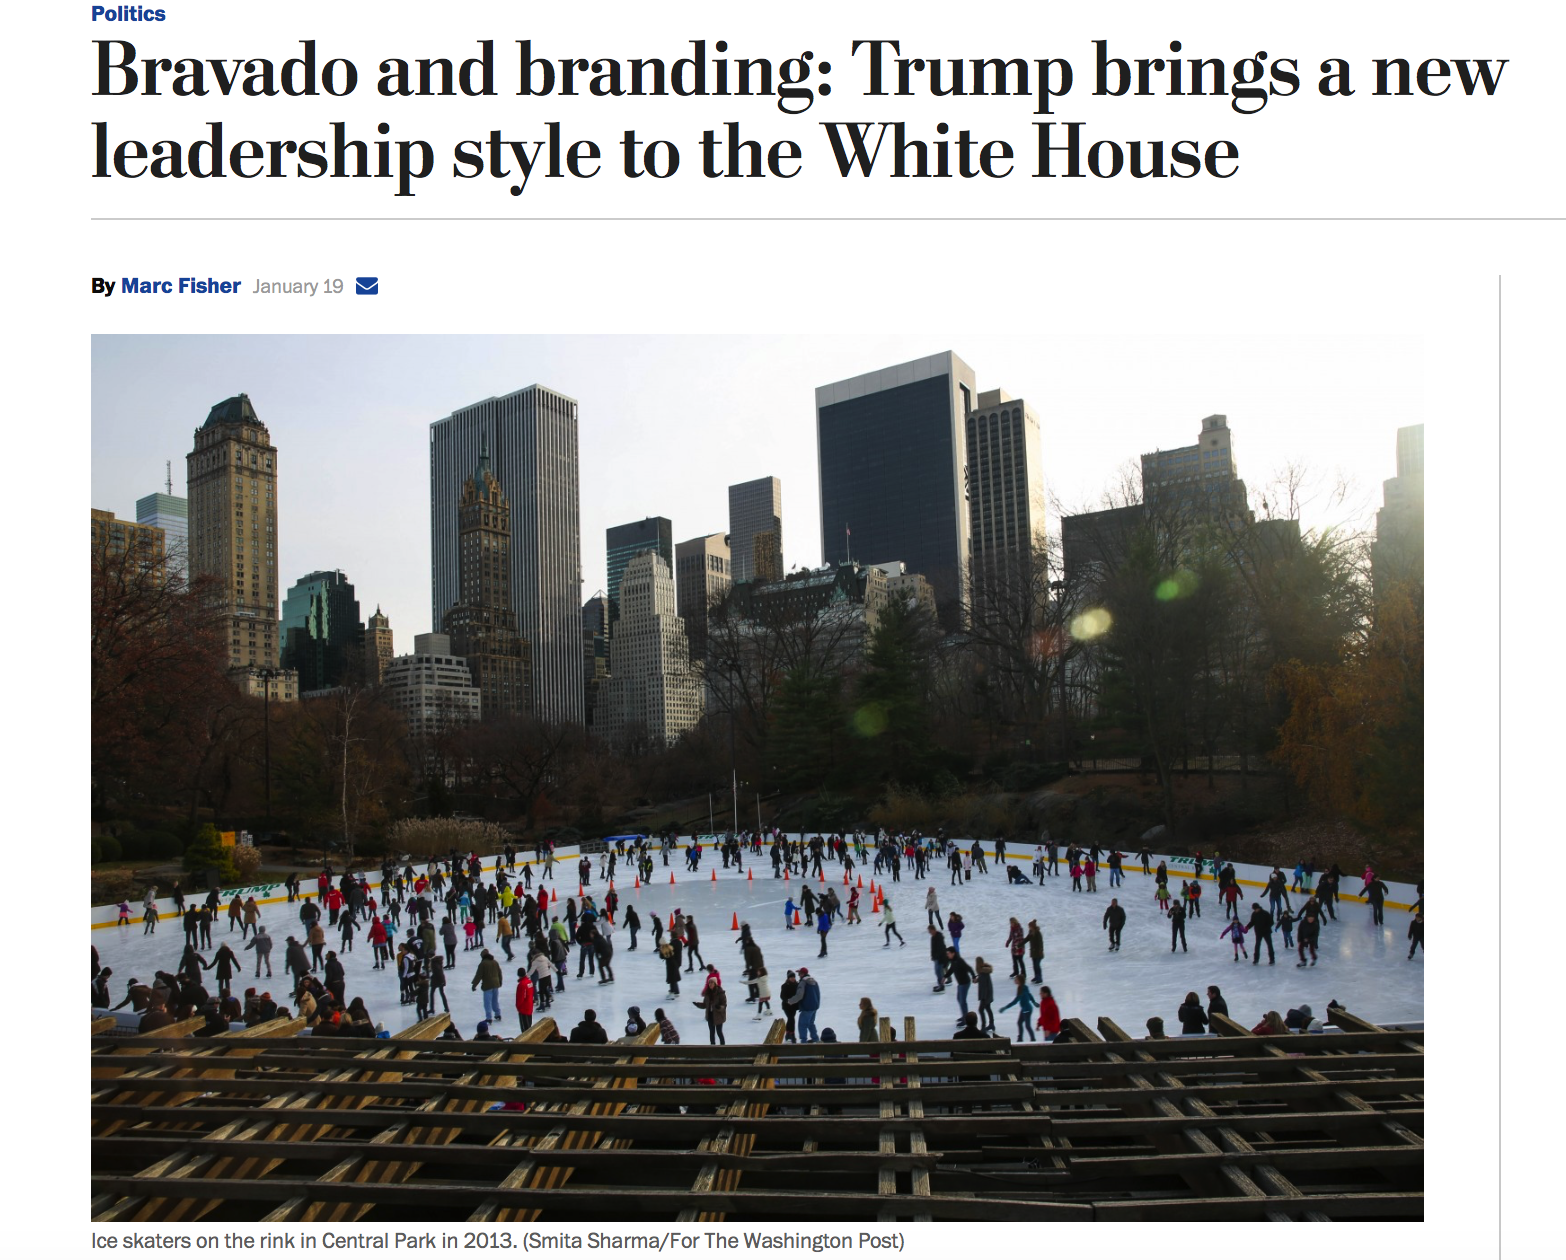 https://www.washingtonpost.com/politics/bravado-and-branding-trump-brings-a-new-leadership-style-to-the-white-house/2017/01/17/91cbe4d2-c623-11e6-bf4b-2c064d32a4bf_story.html?utm_term=.eaa82856aa40